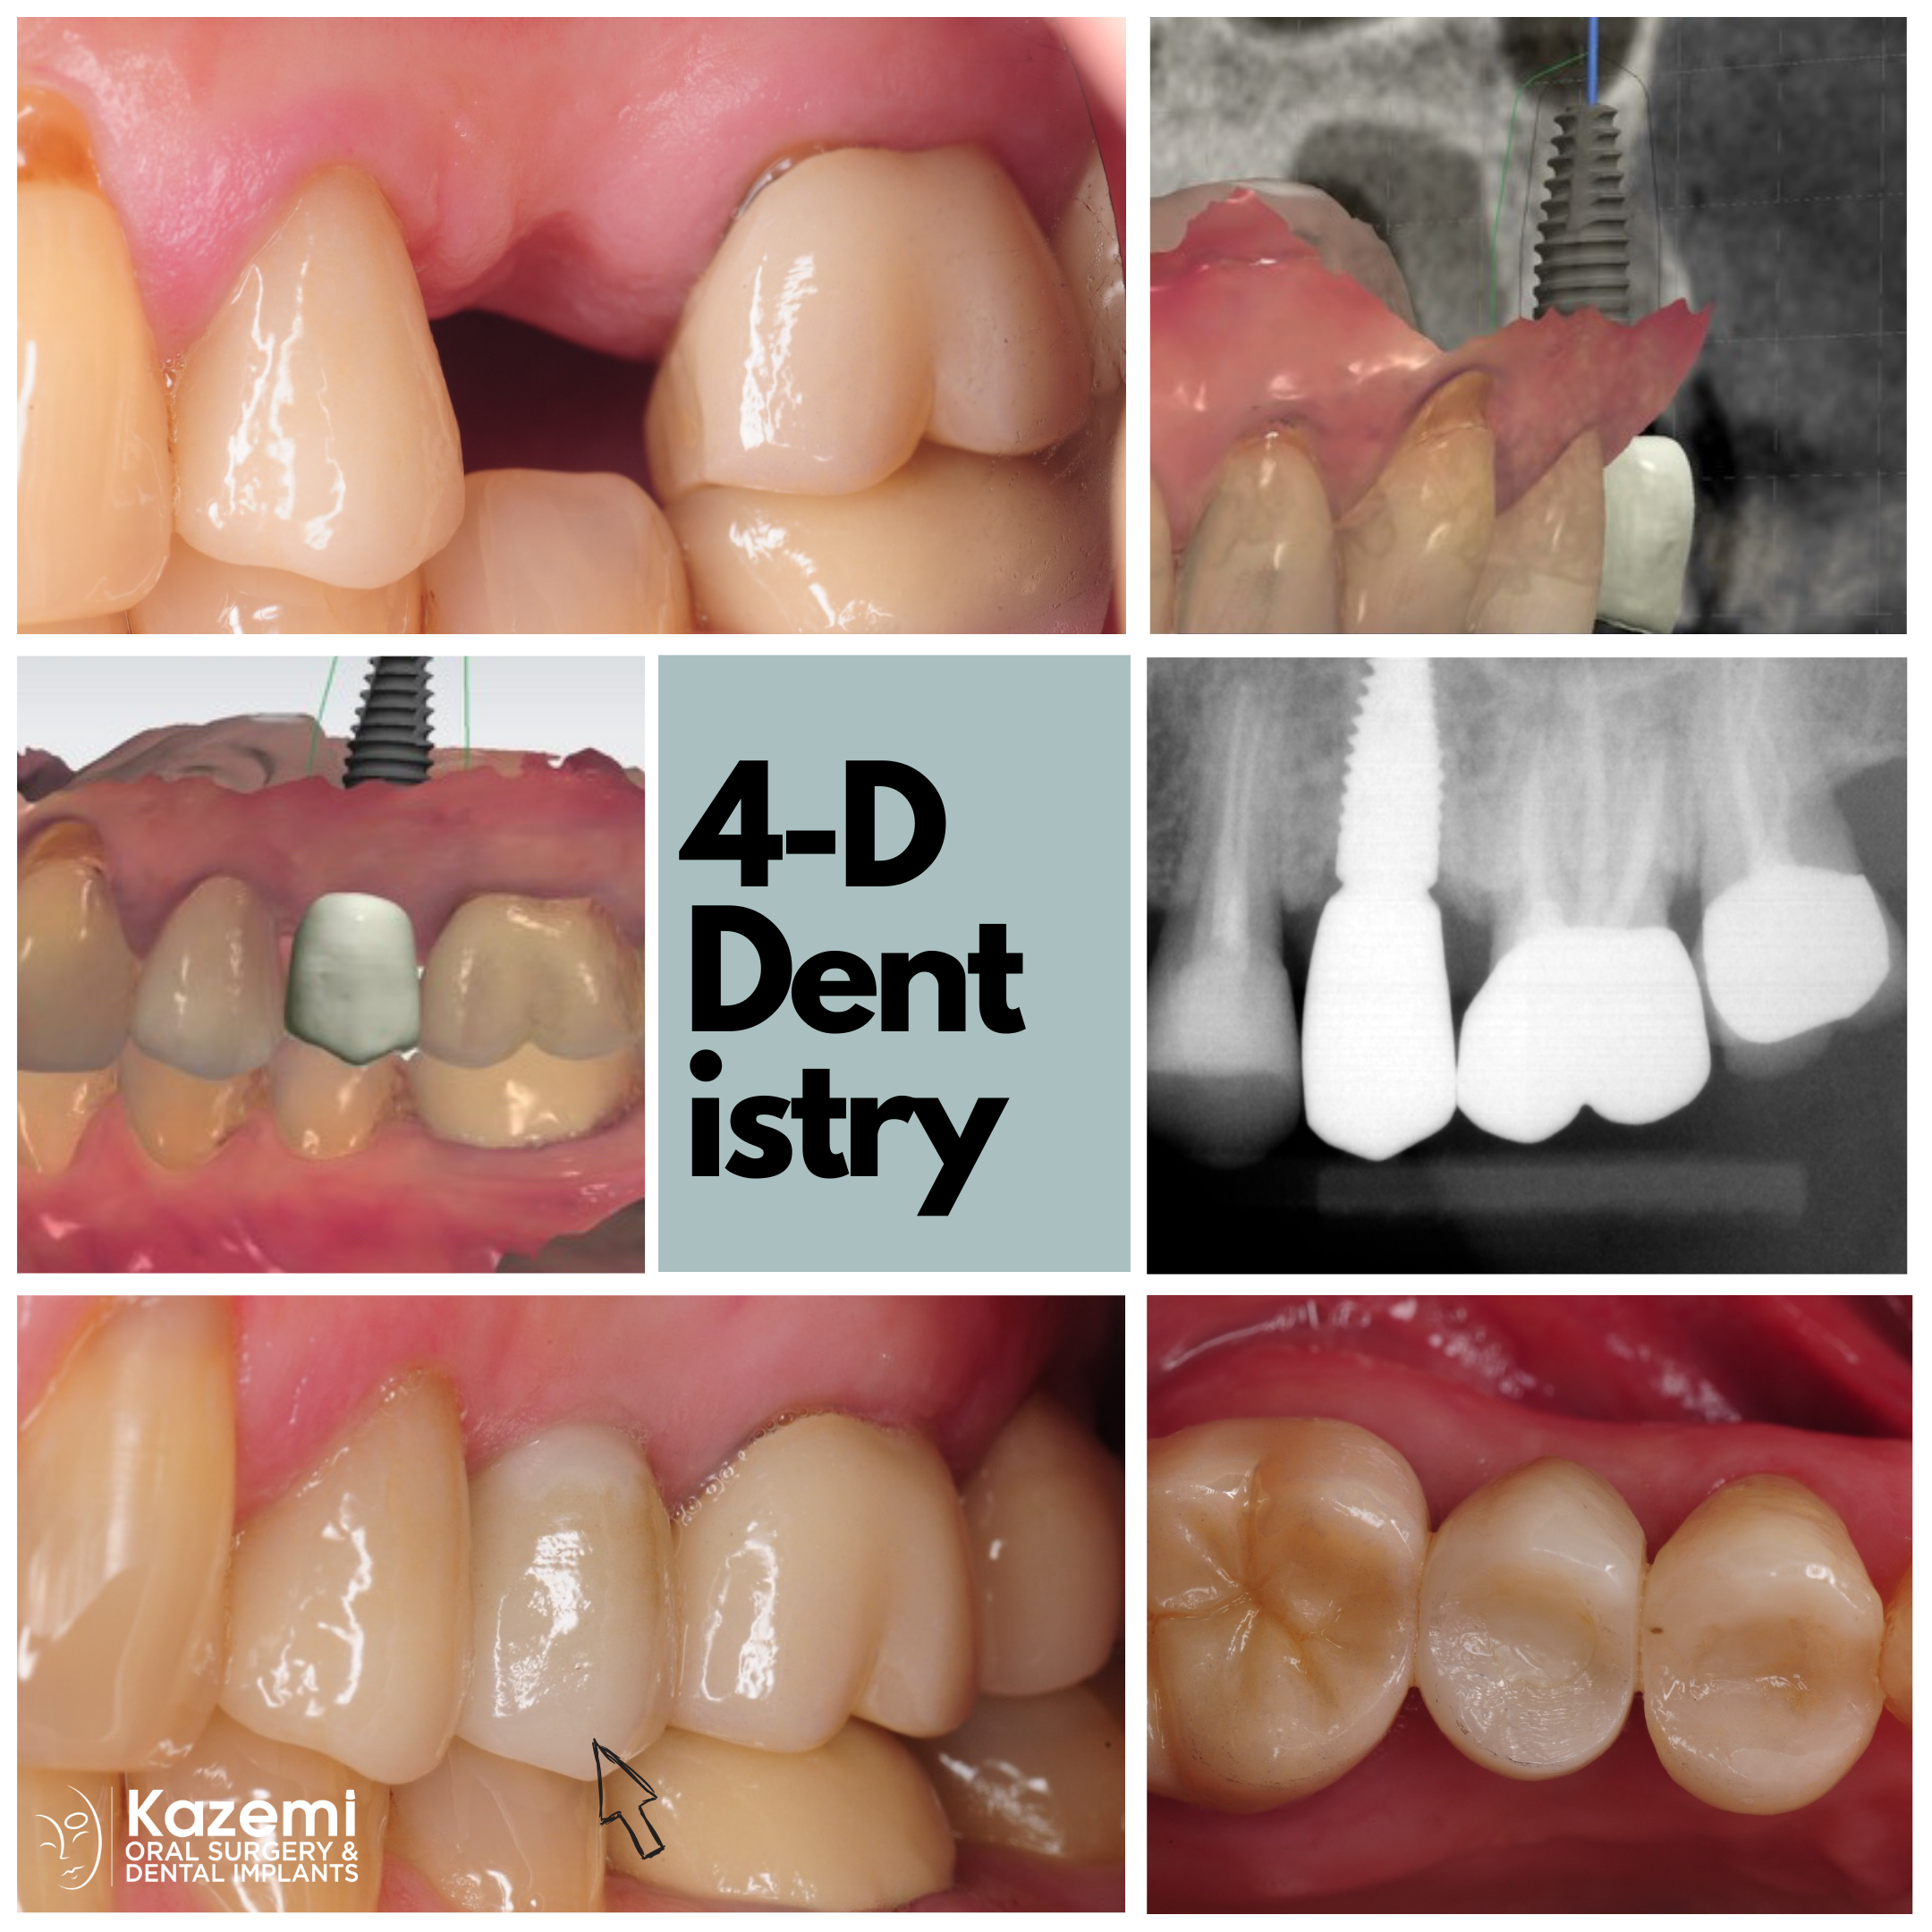 dental-implant-trios-3-shape-straumann-kazemi-oral-surgery-best-bethesda-implant-dentist-